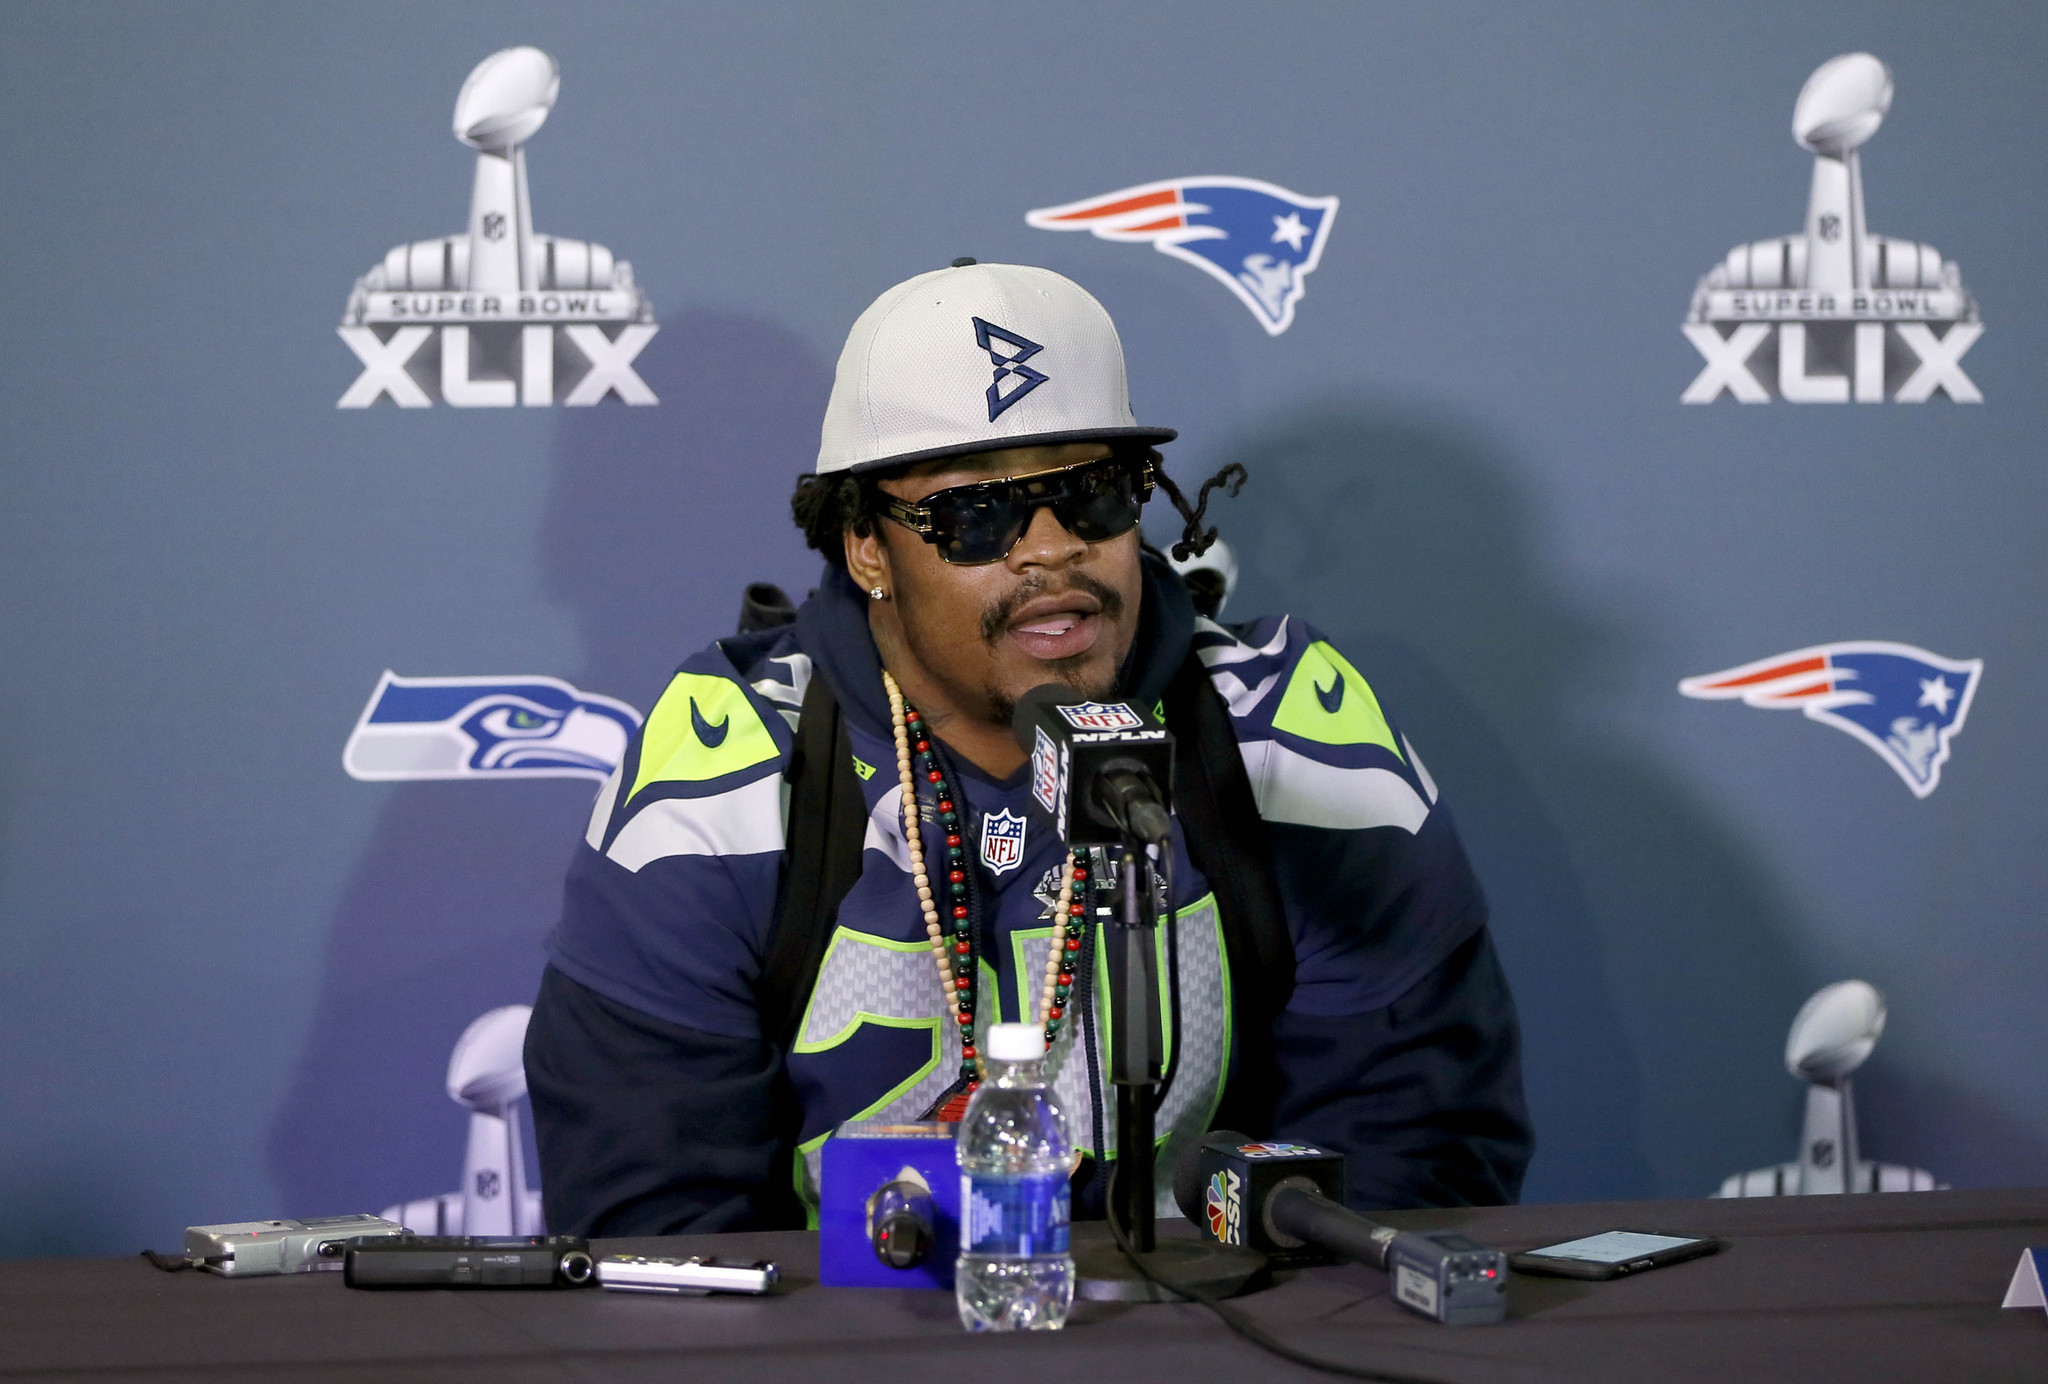 Seahawks Marshawn Lynch Goes Unscripted In Interview